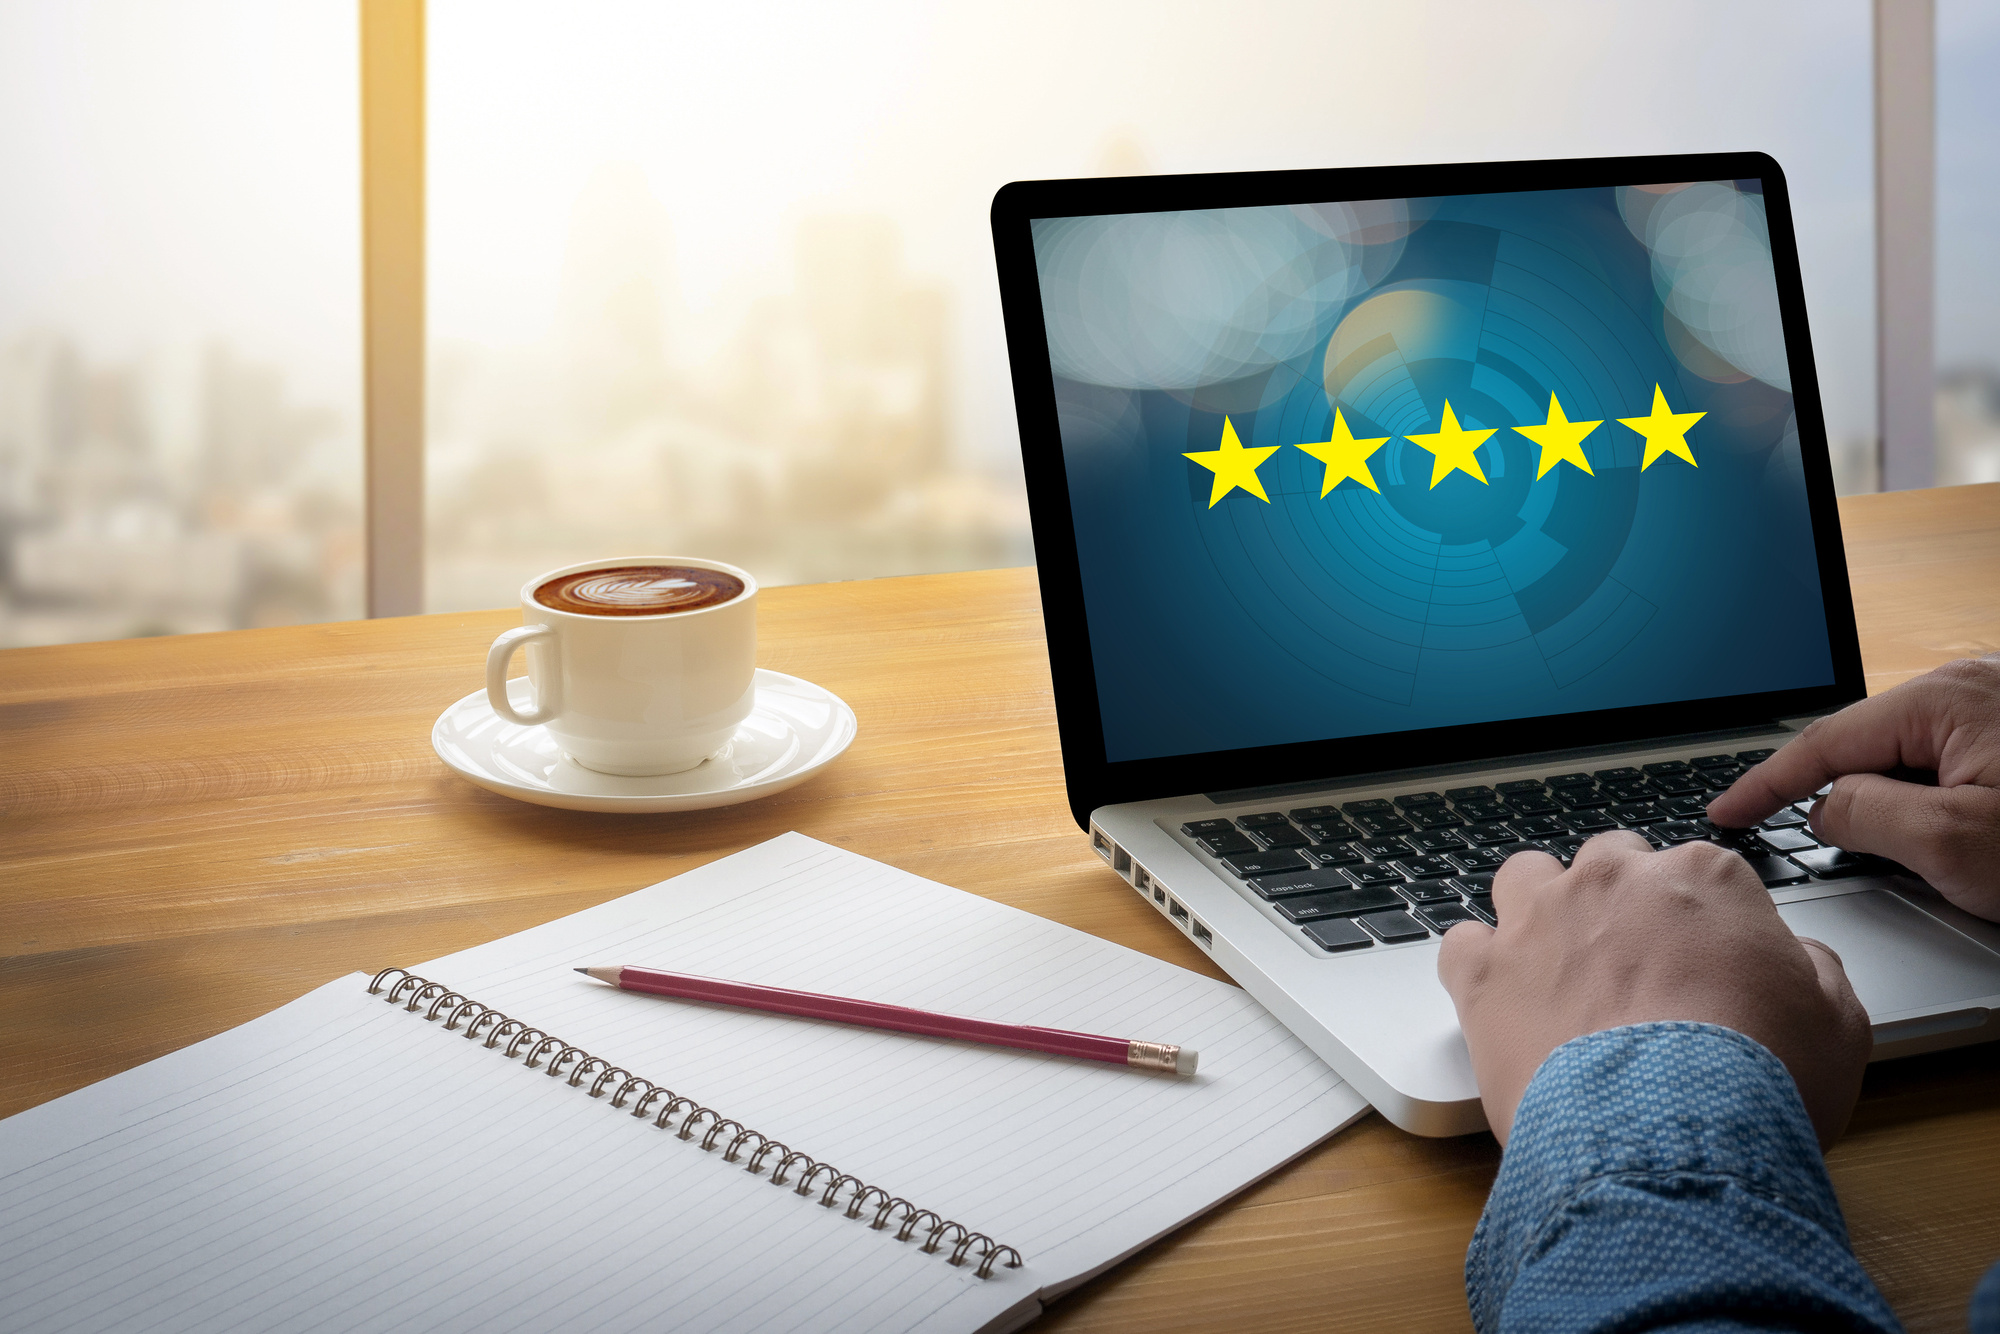 product review blog - How To Craft Helpful Posts for a Product Review Blog